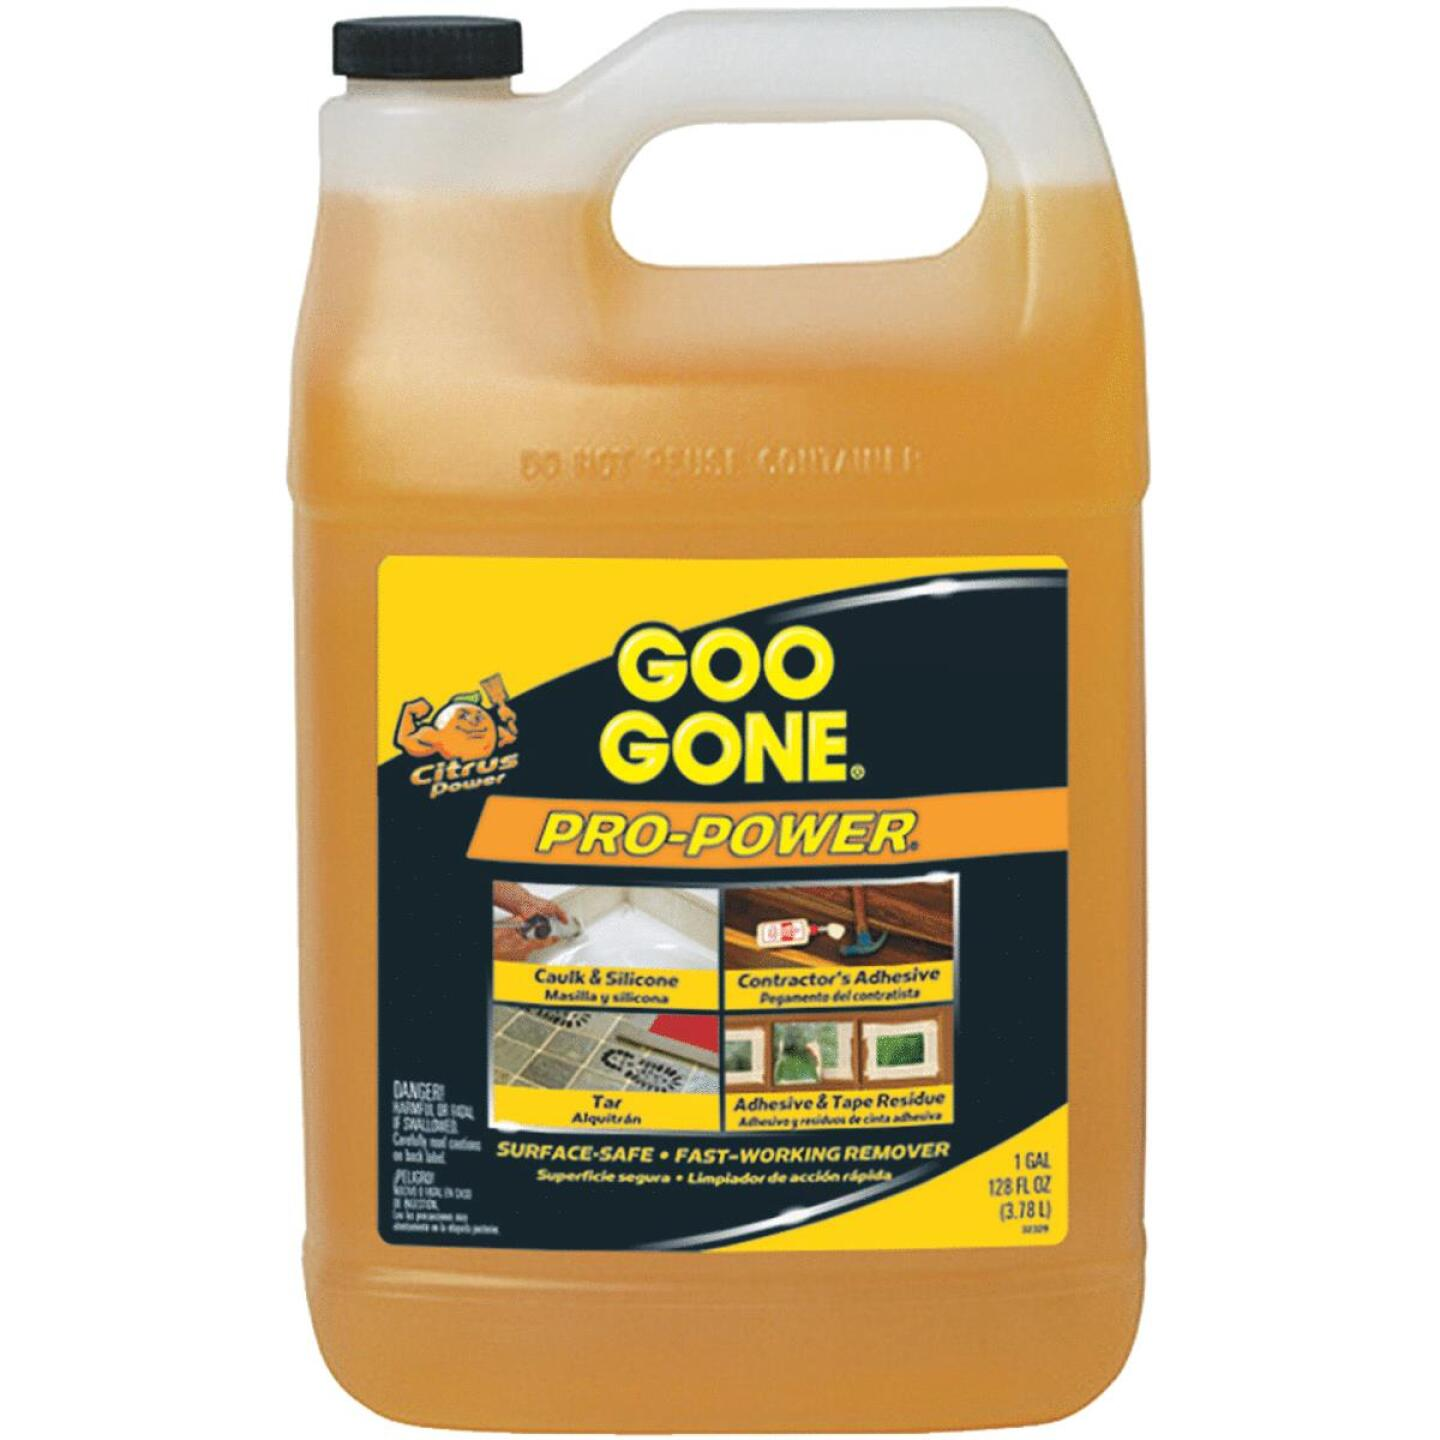 Goo Gone 1 Gal. Pro-Power Adhesive Remover Image 282